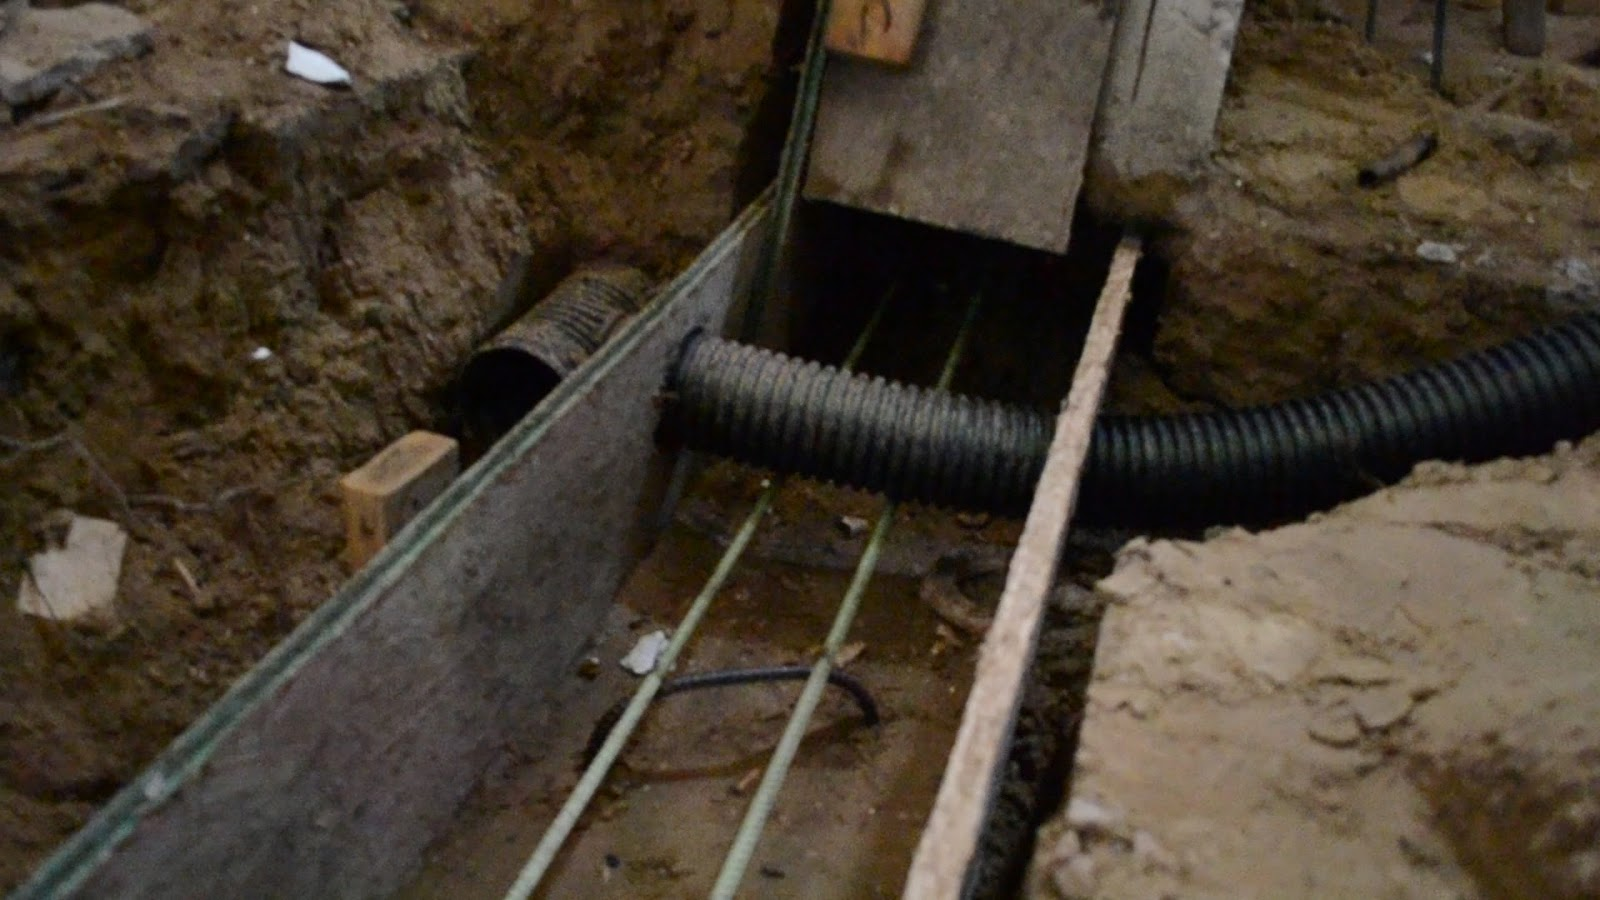 Crawlspace low point drain details Pacific NW-cap-1.jpg